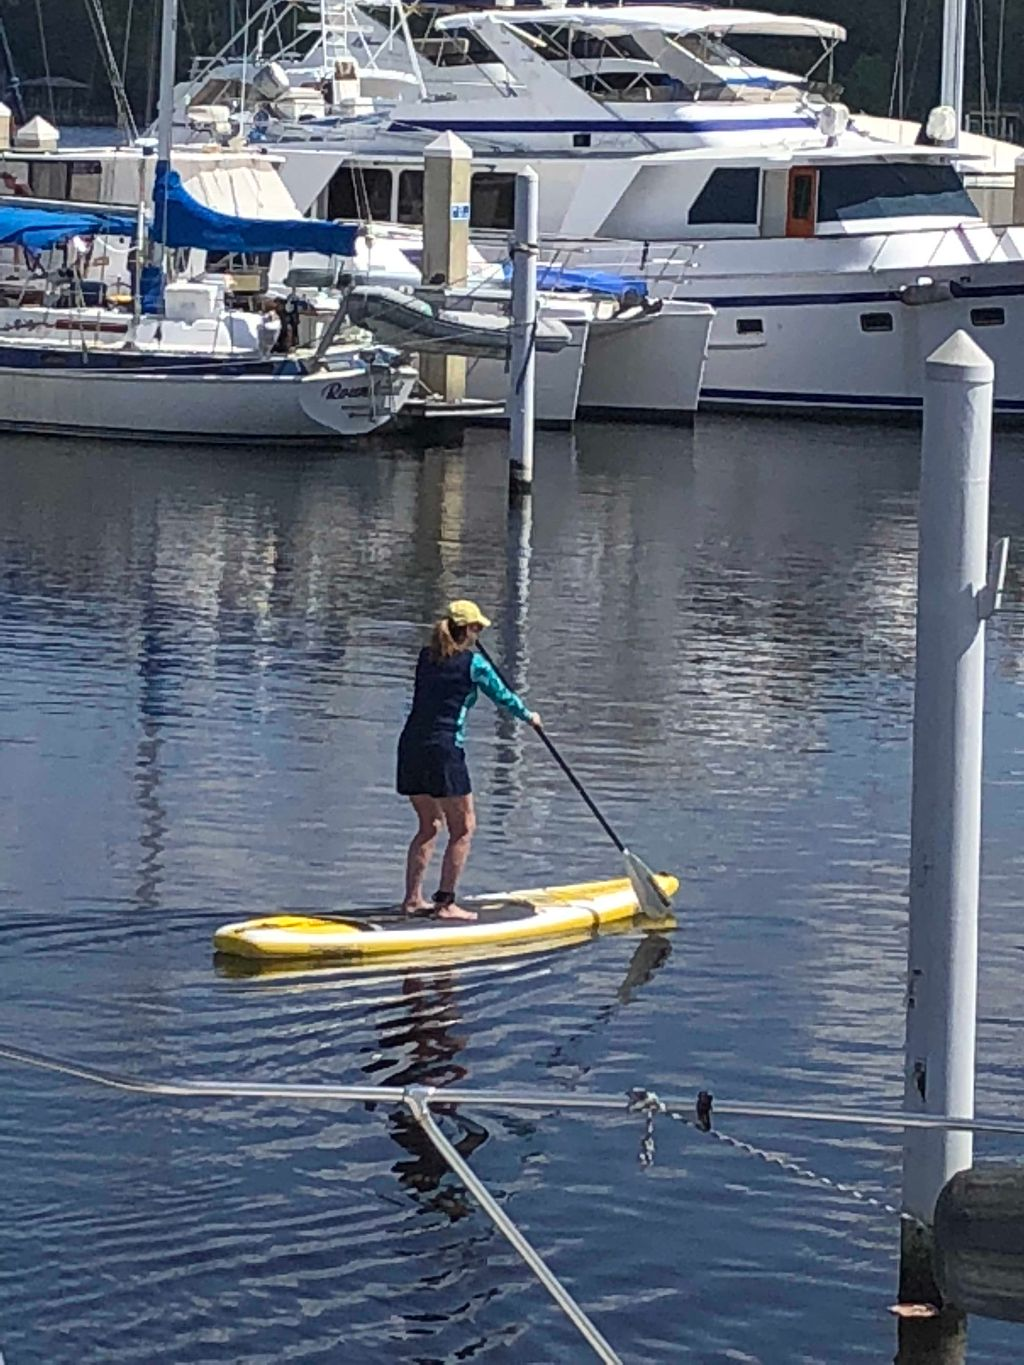 steph on the paddle board